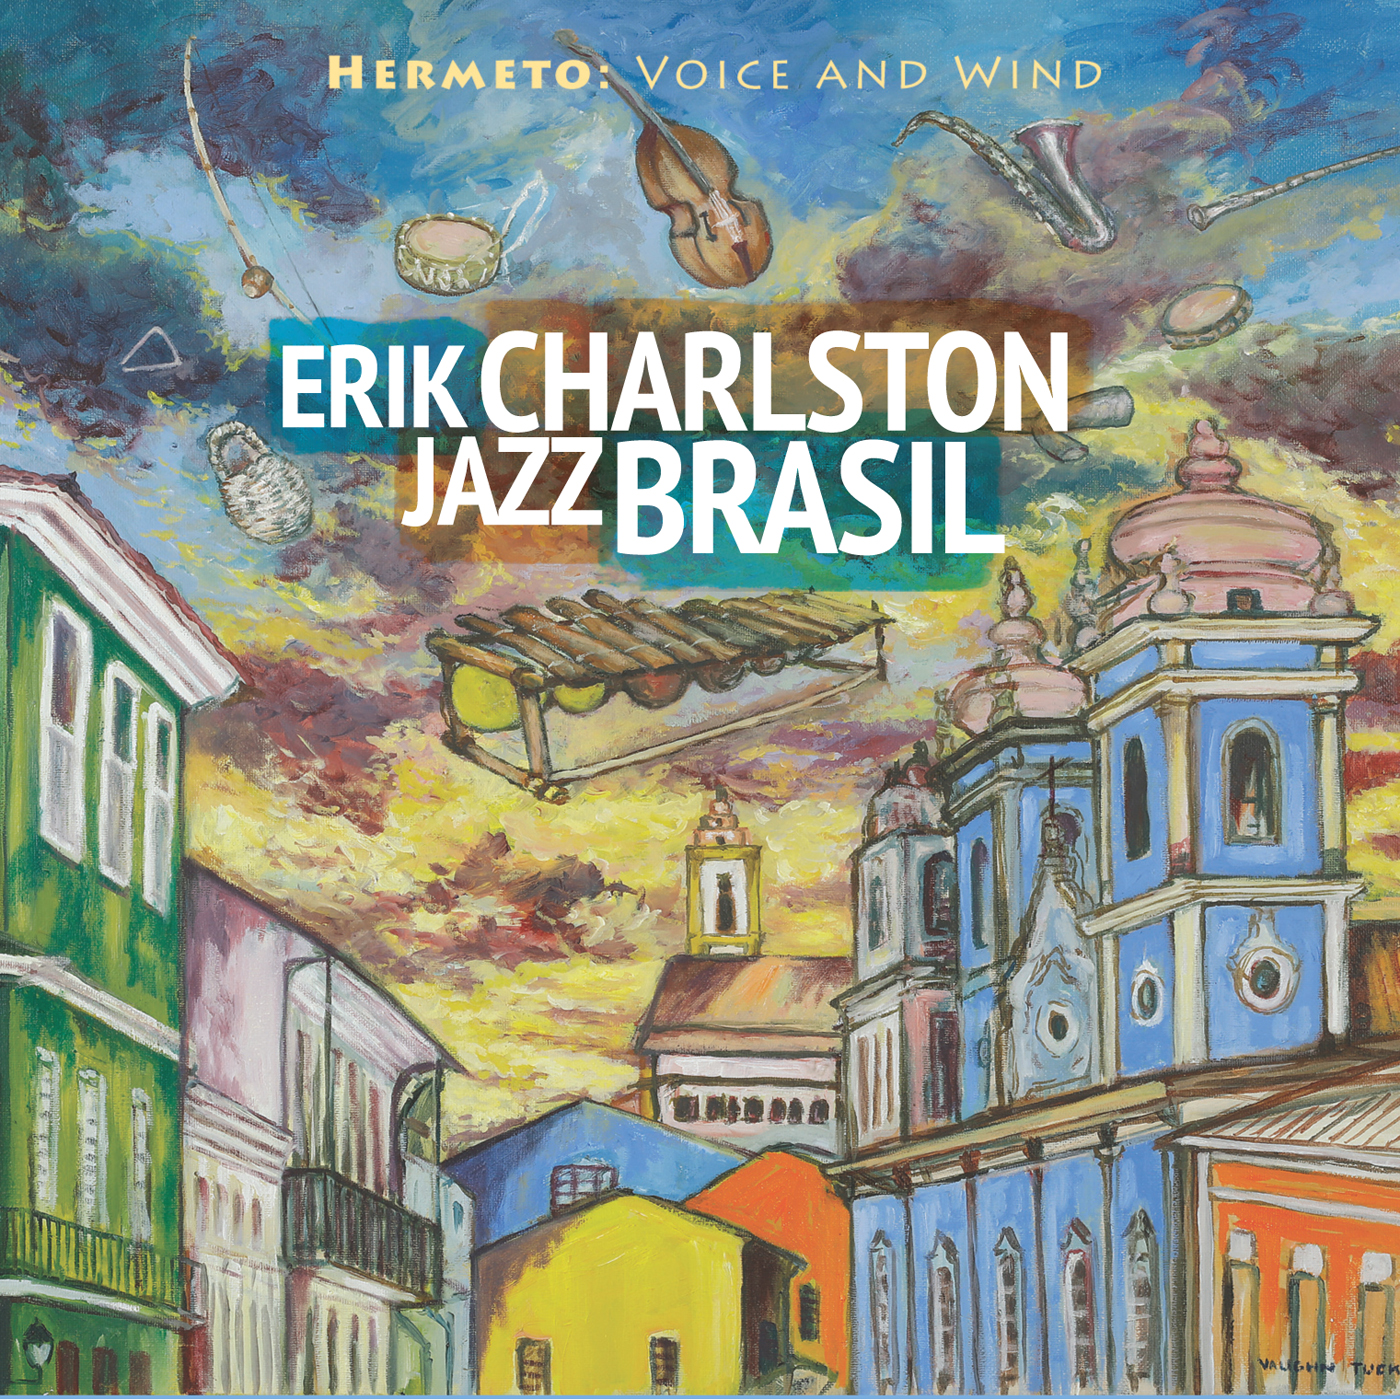 Hermeto: Voice and Wind  by Erik  Charlston cover